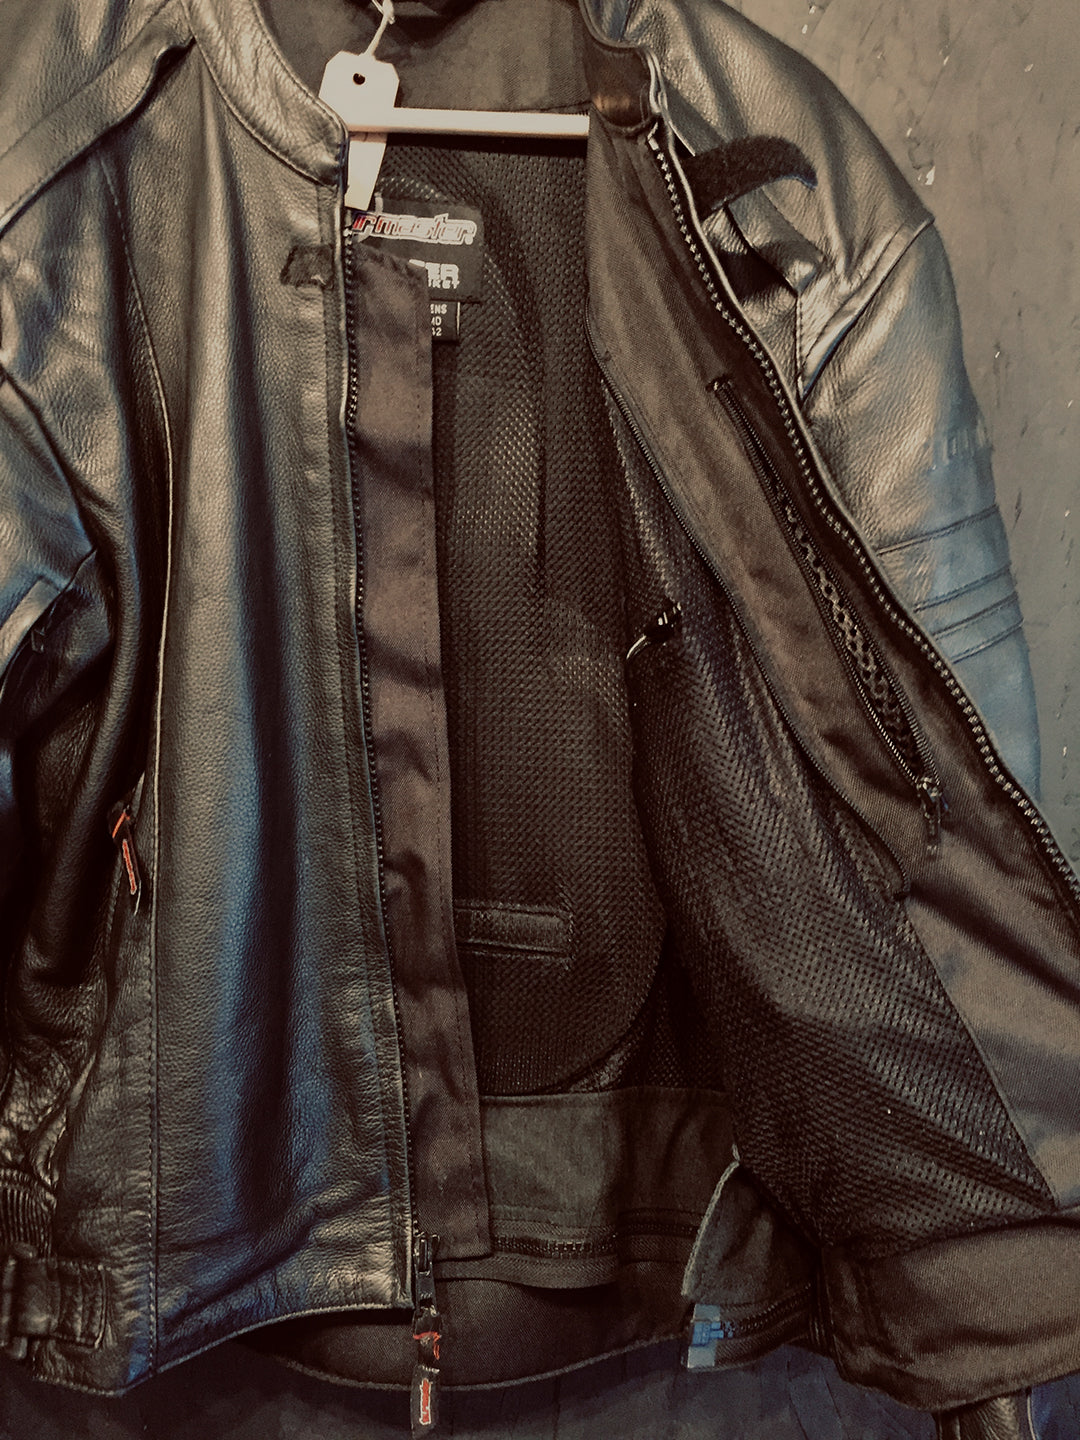 Jacket Leather Black Armored L #18511